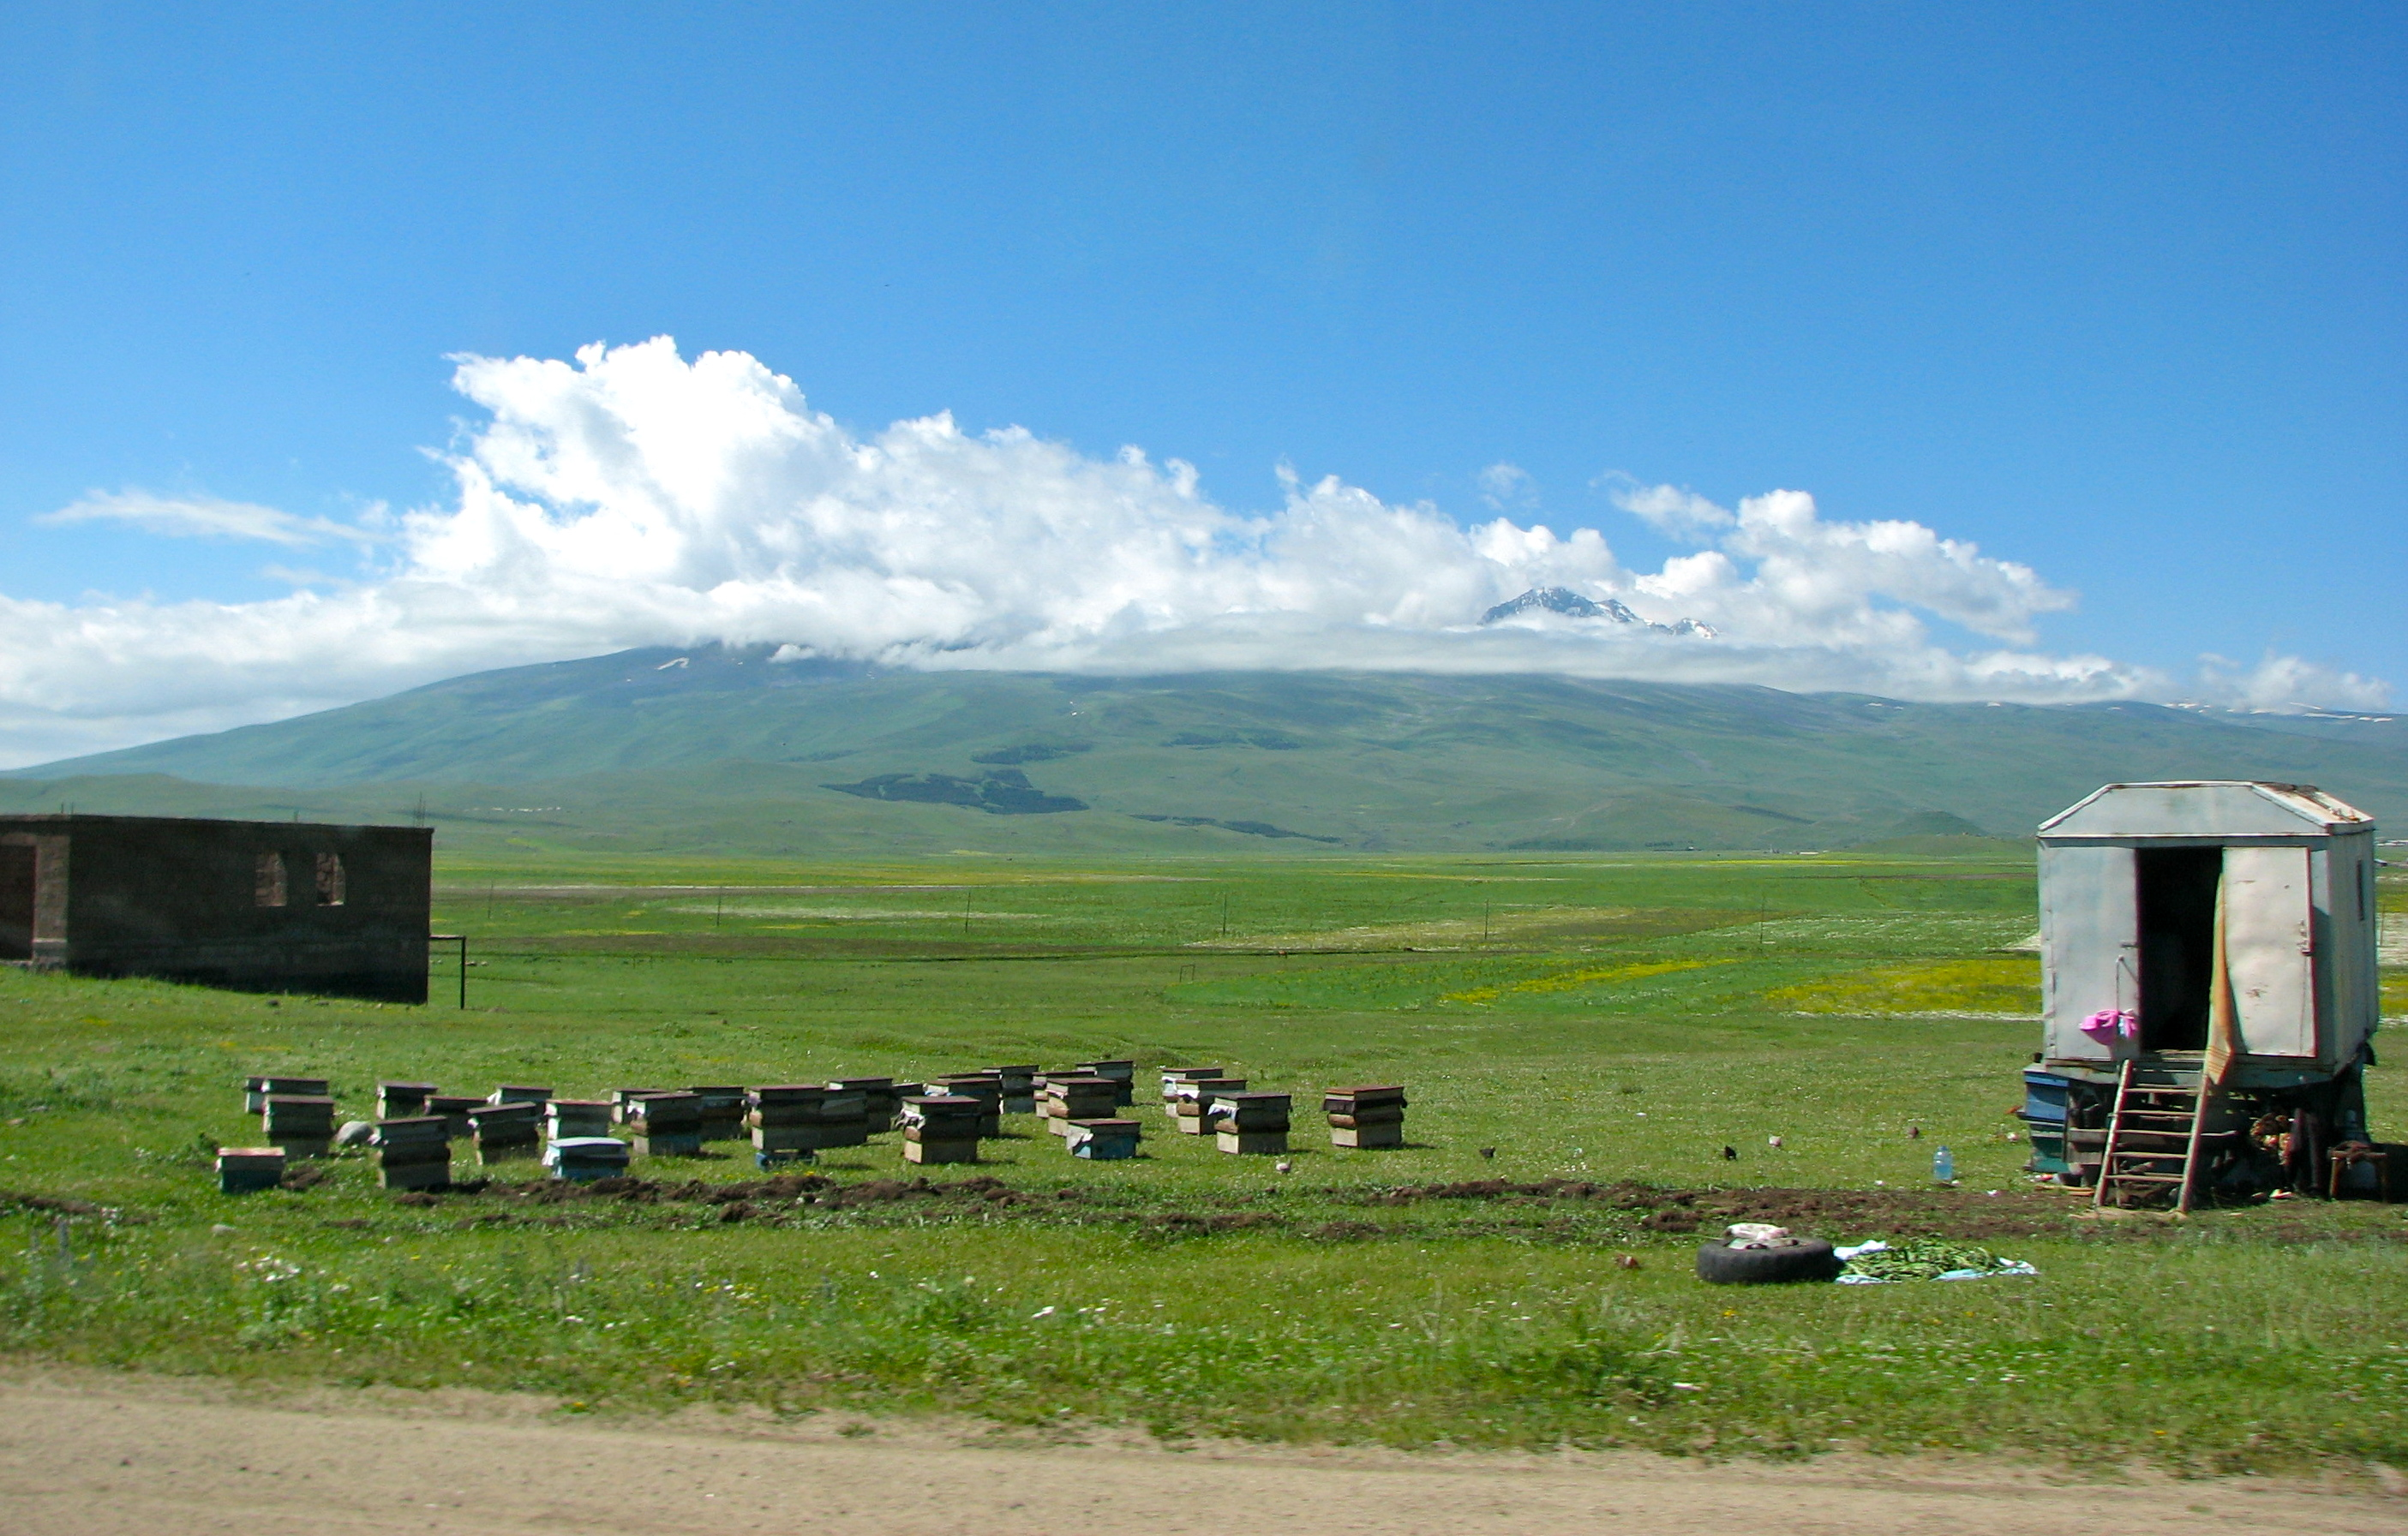 Beehives in the countryside of Tbilisi Georgia